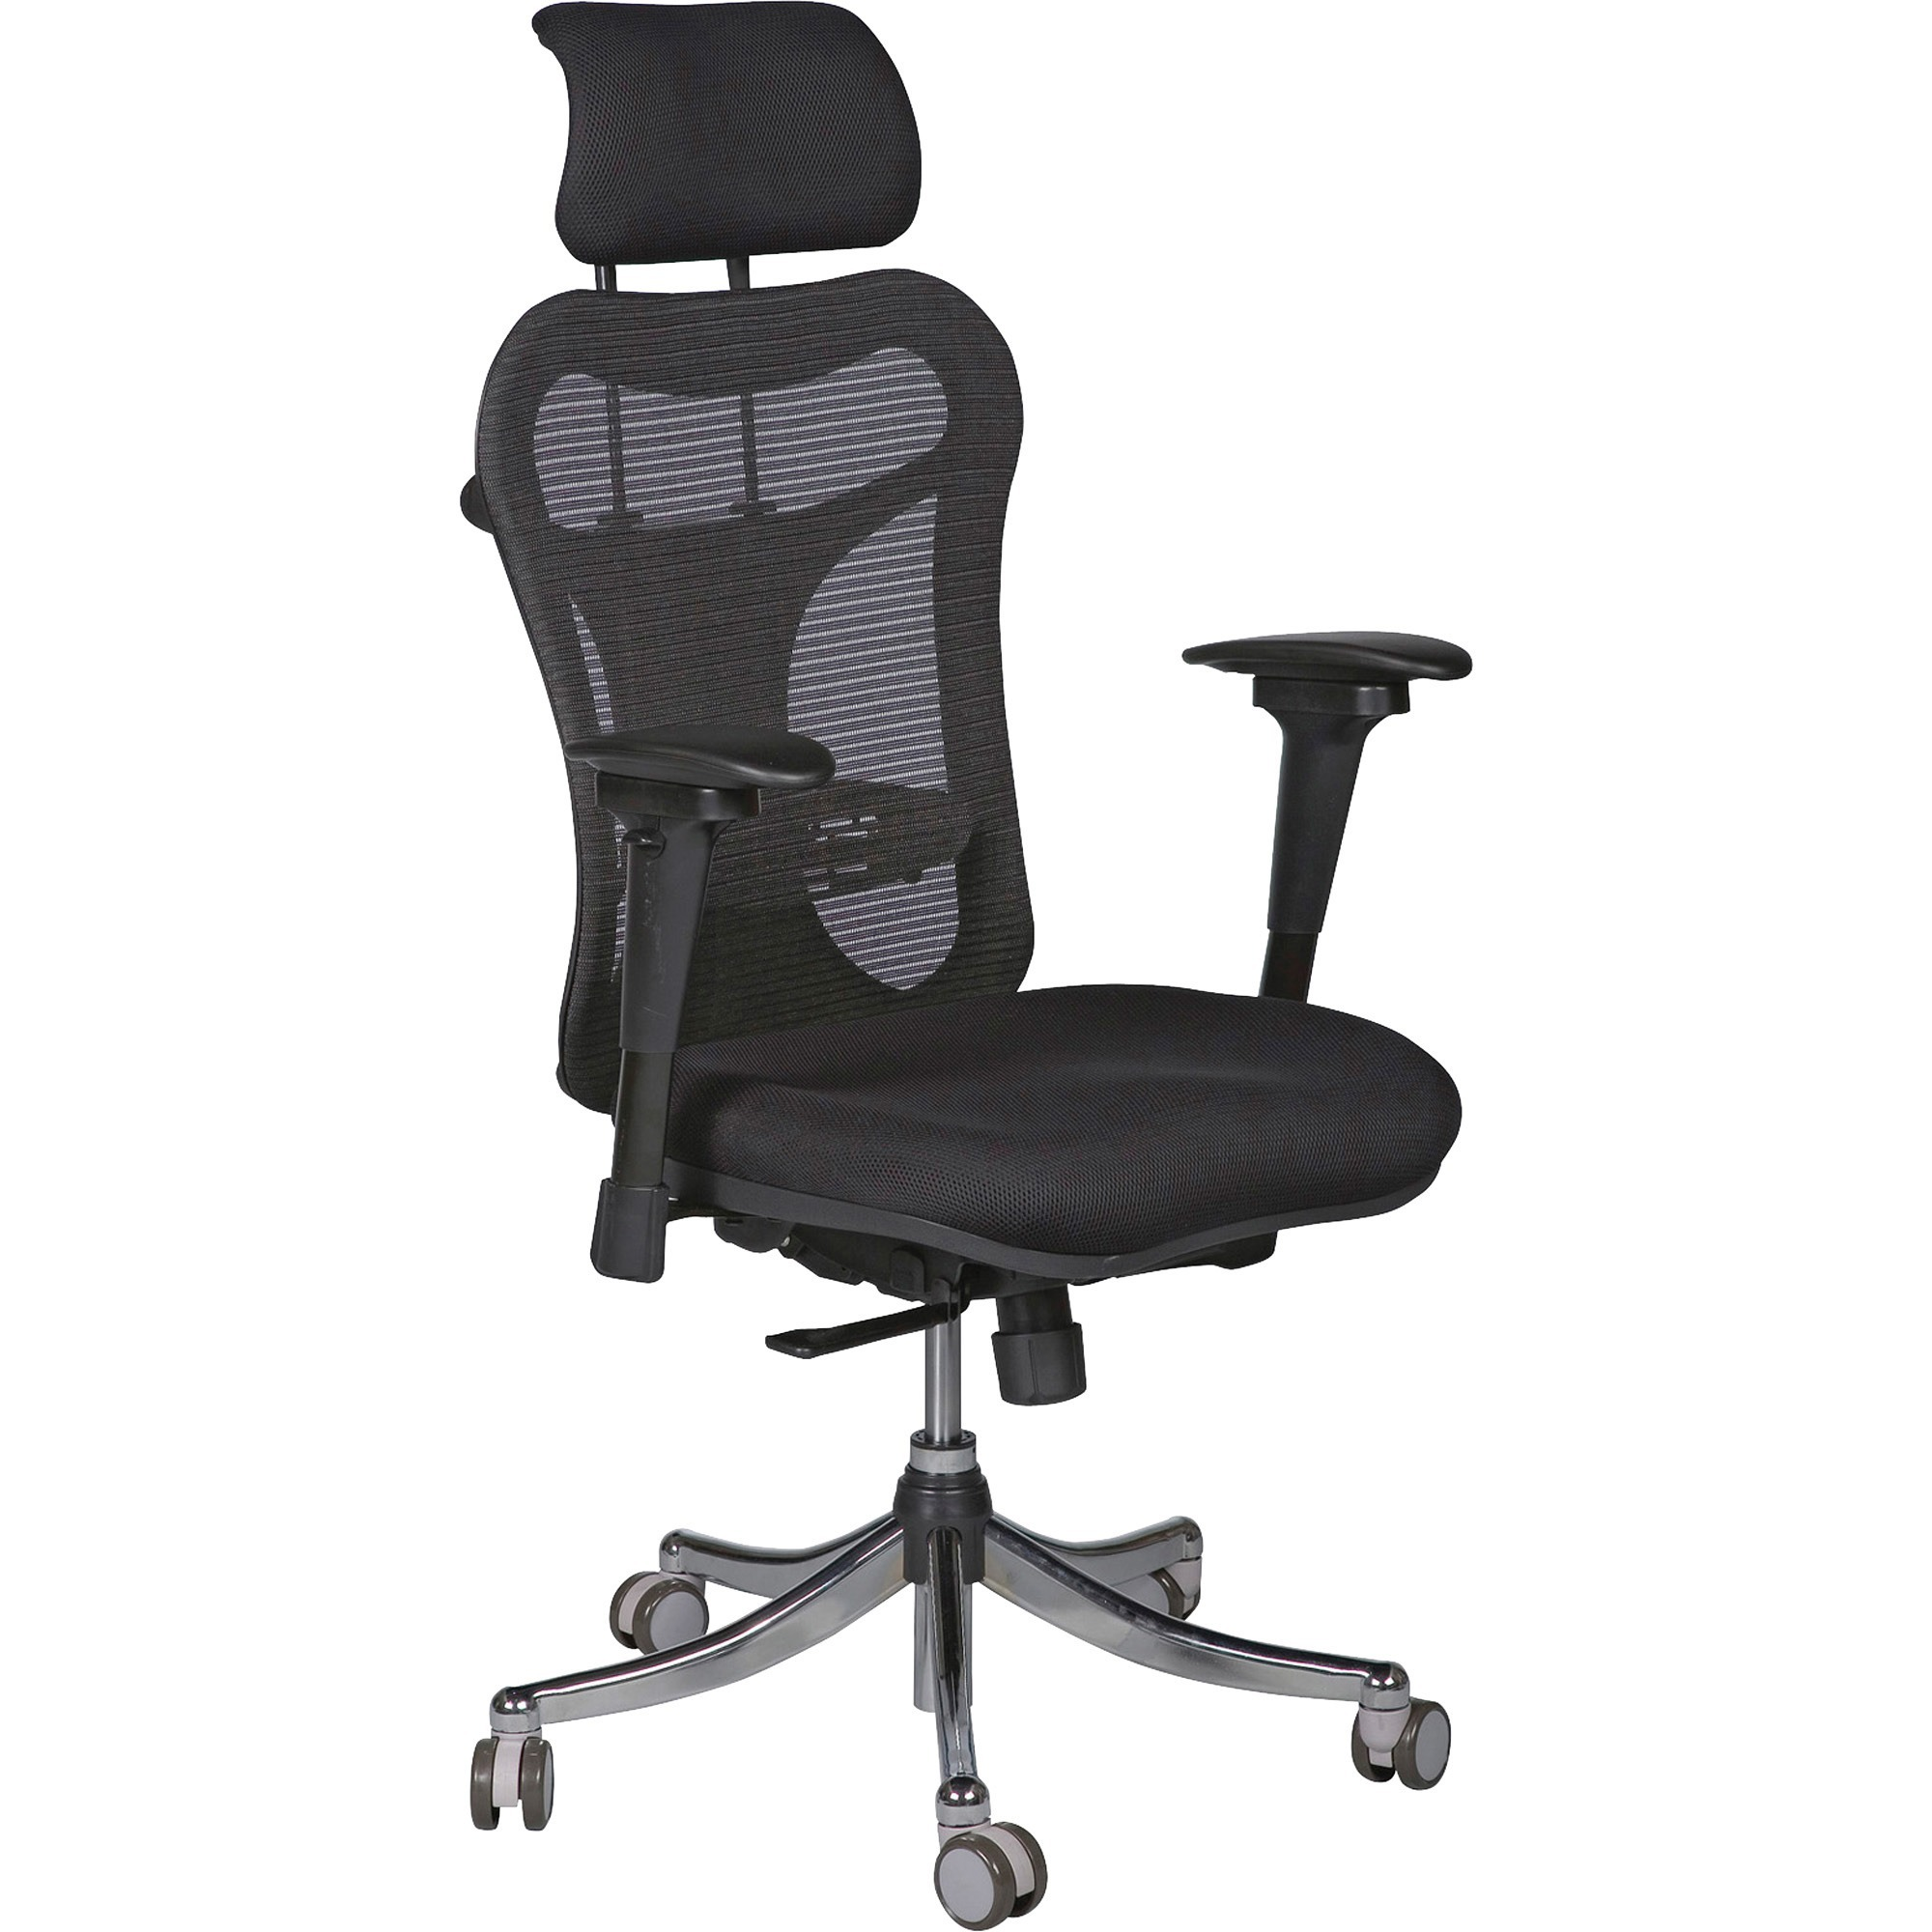 MooreCo Ergo Ex Ergonomic Office Chair